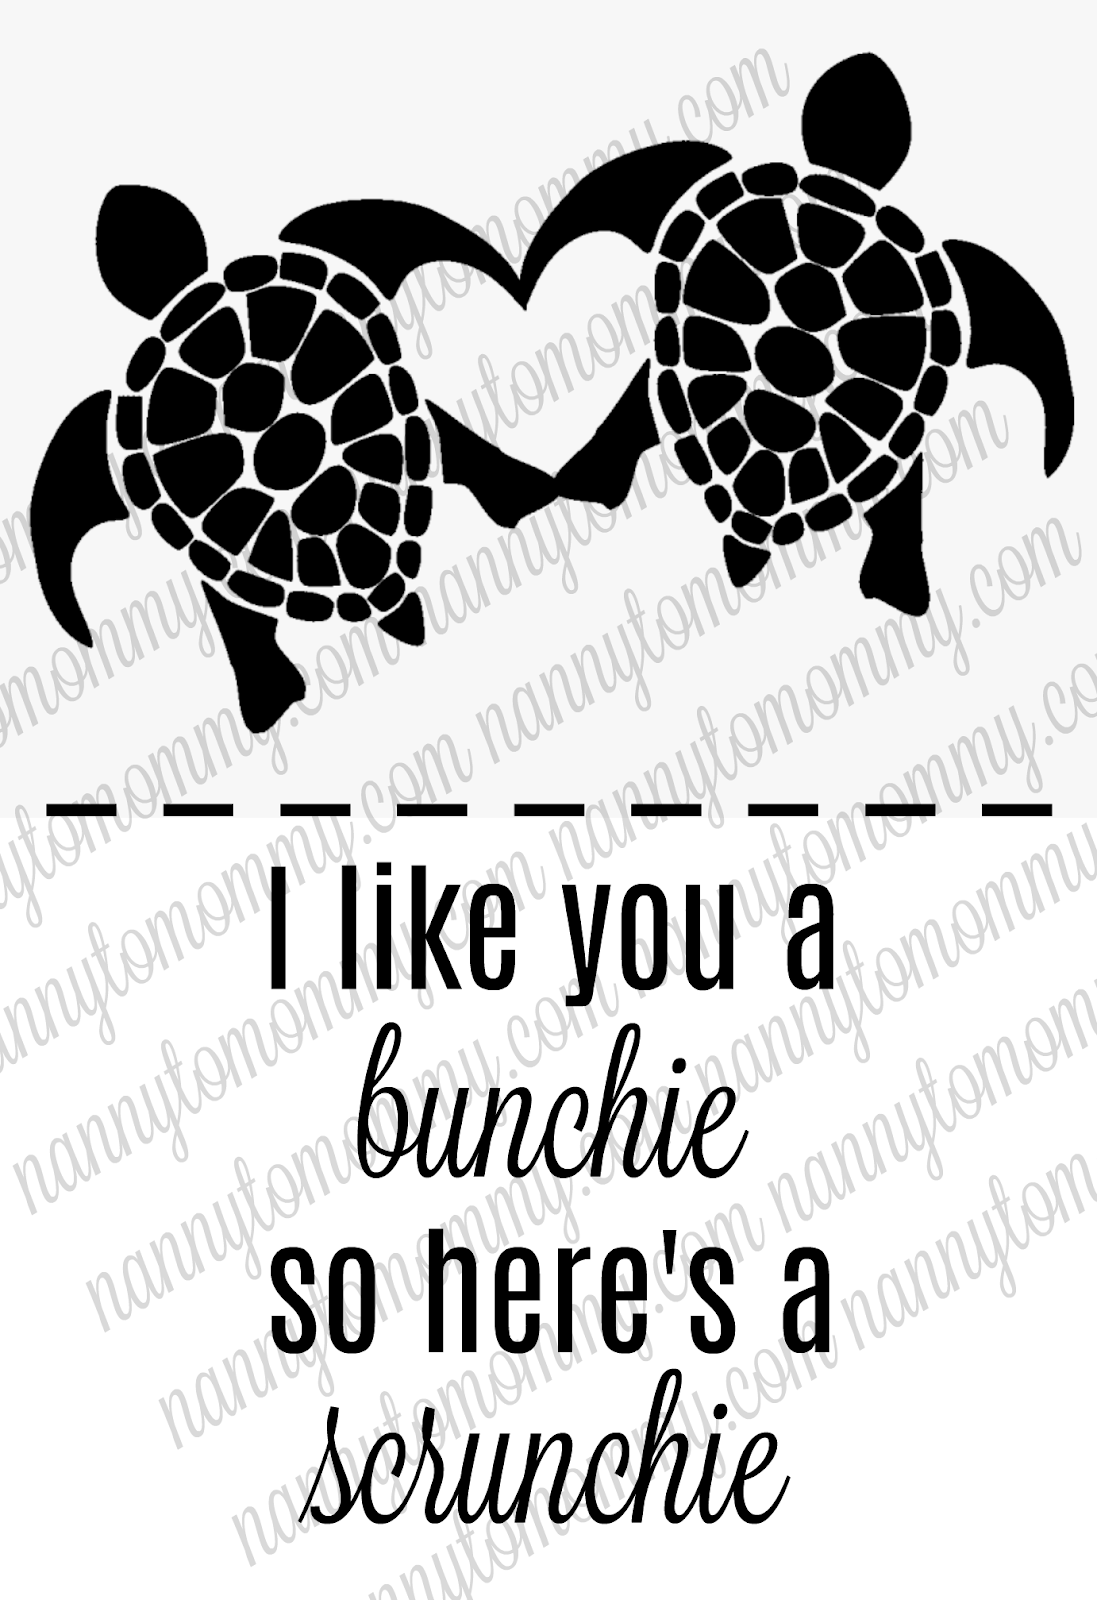 save the turtles scrunchie valentine idea